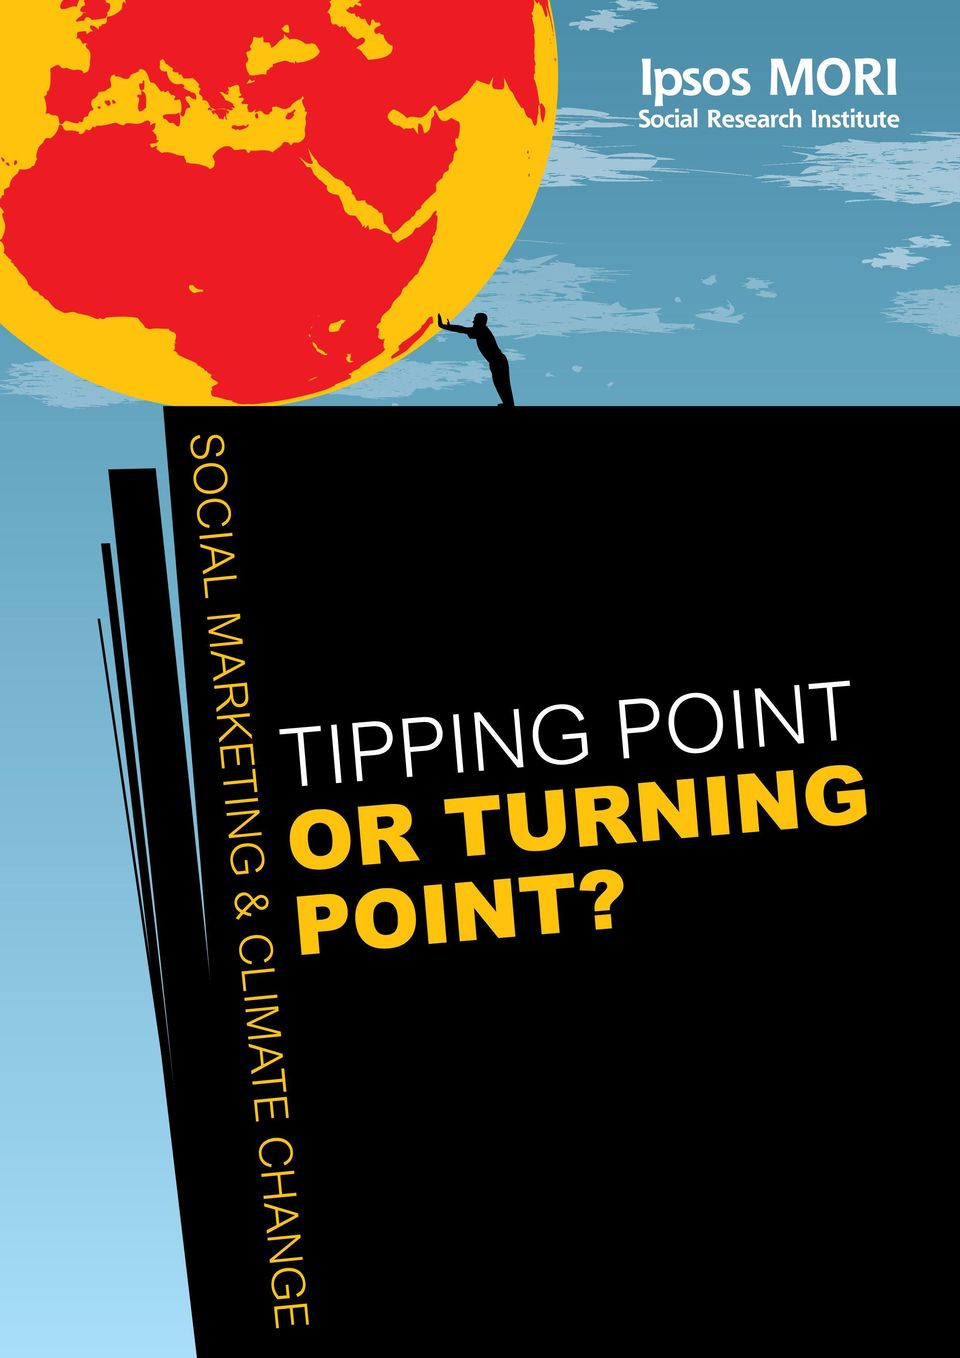 TIPPING POINT OR